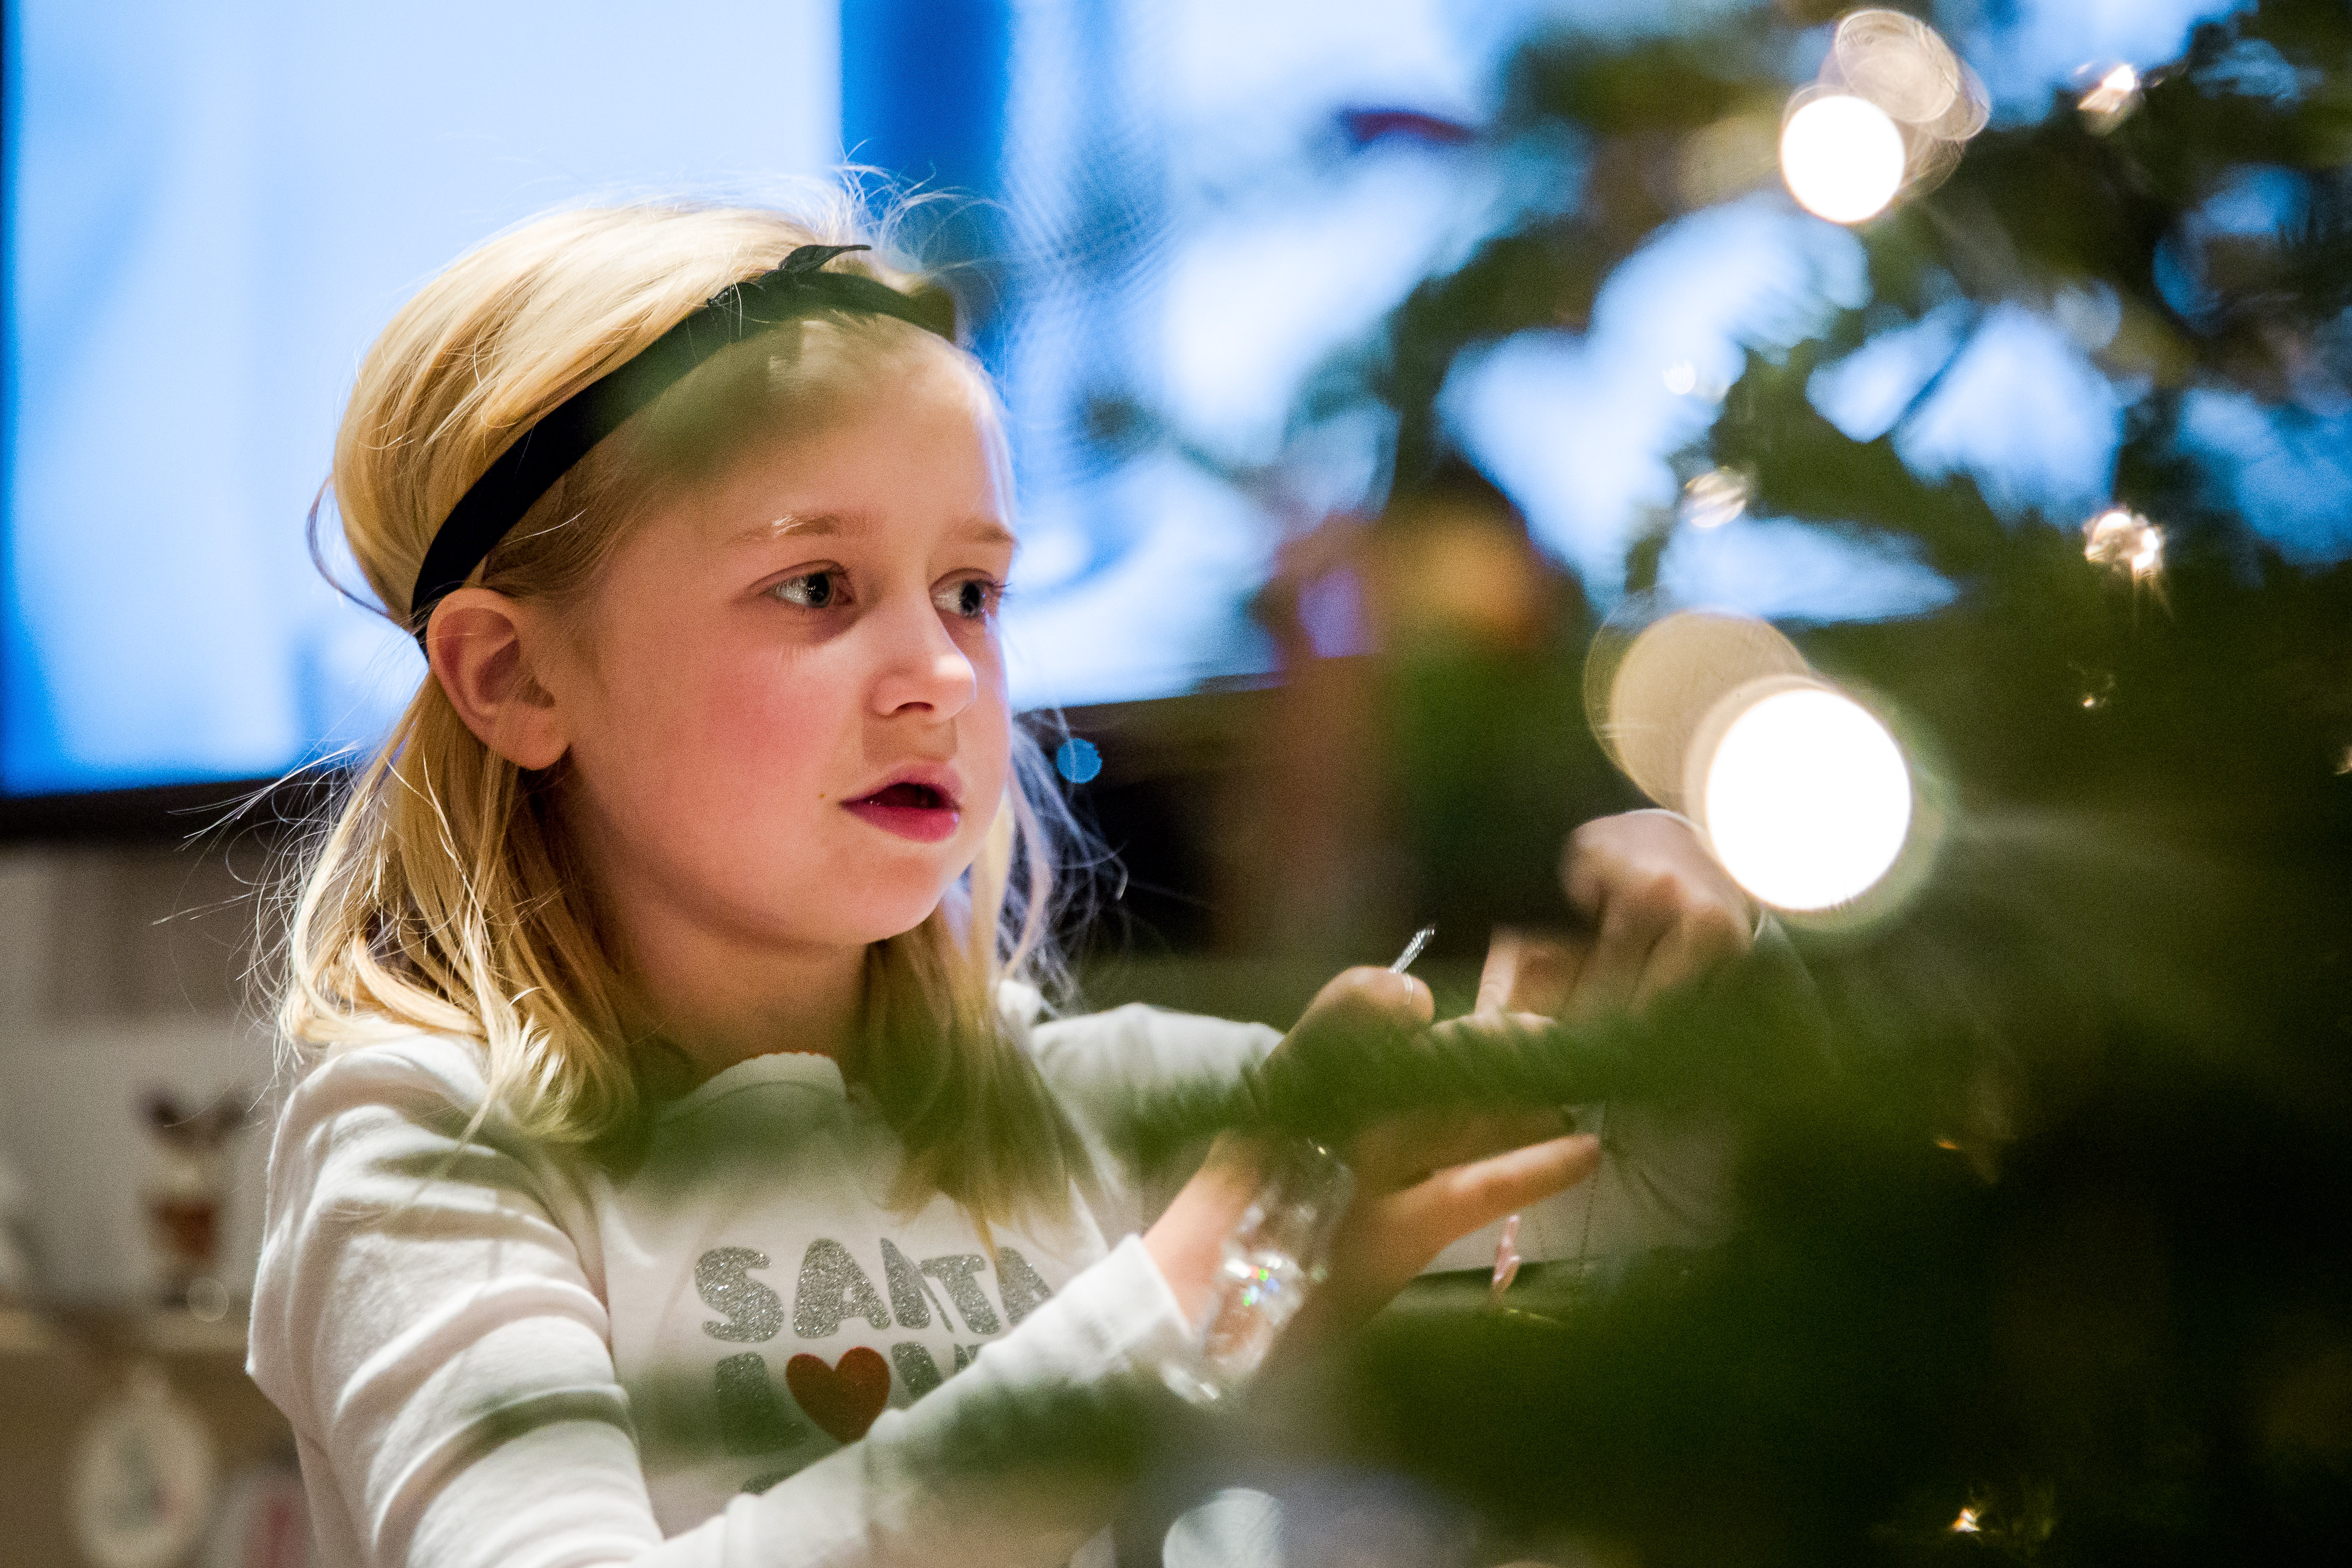 Looking through tree at little girl and lights